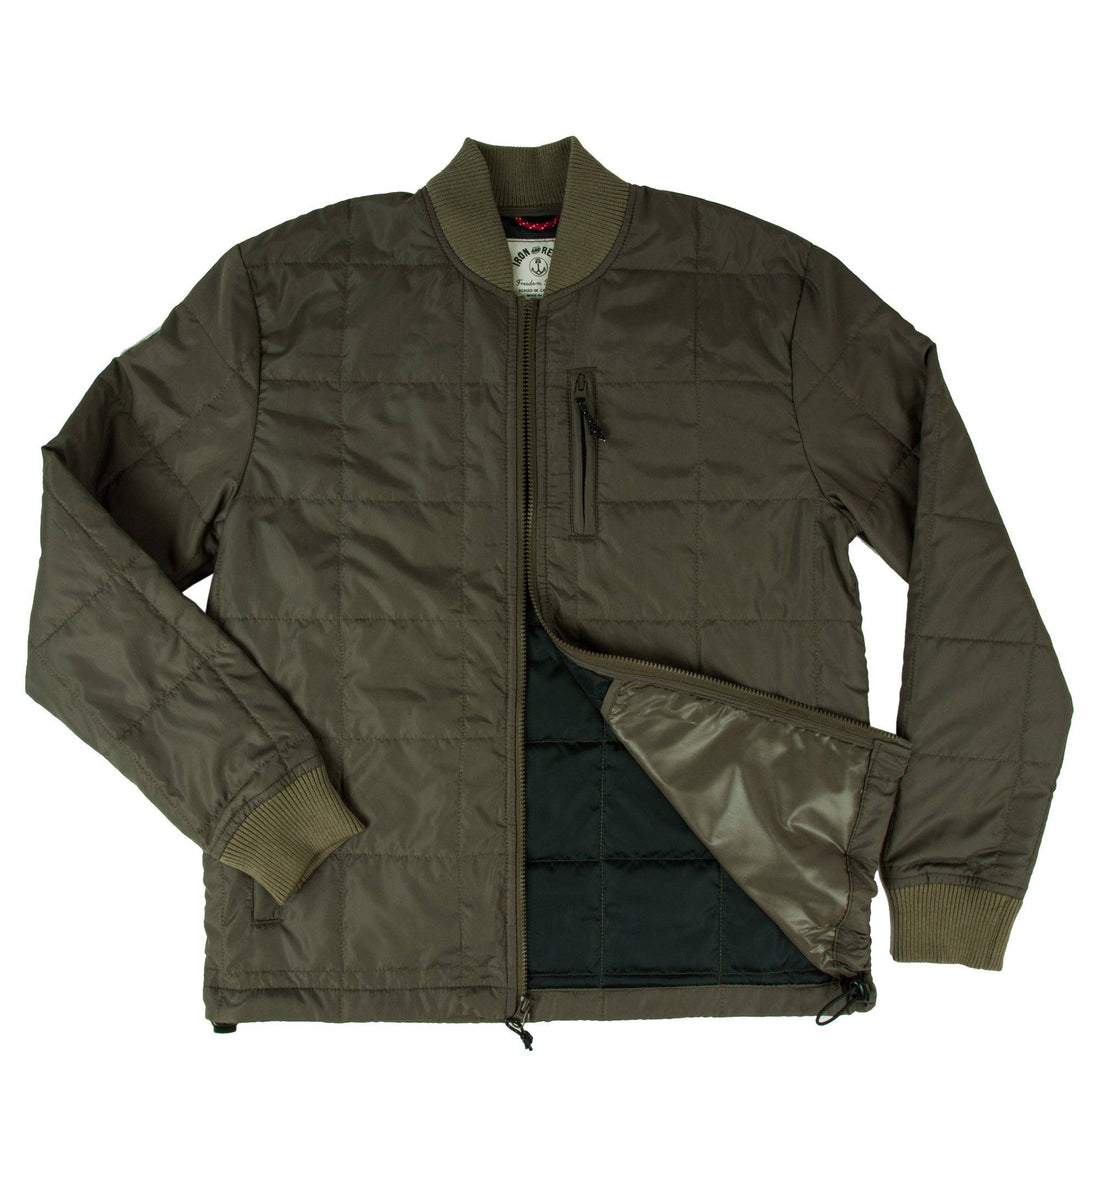 Reserve Jacket - Outerwear - Iron and Resin